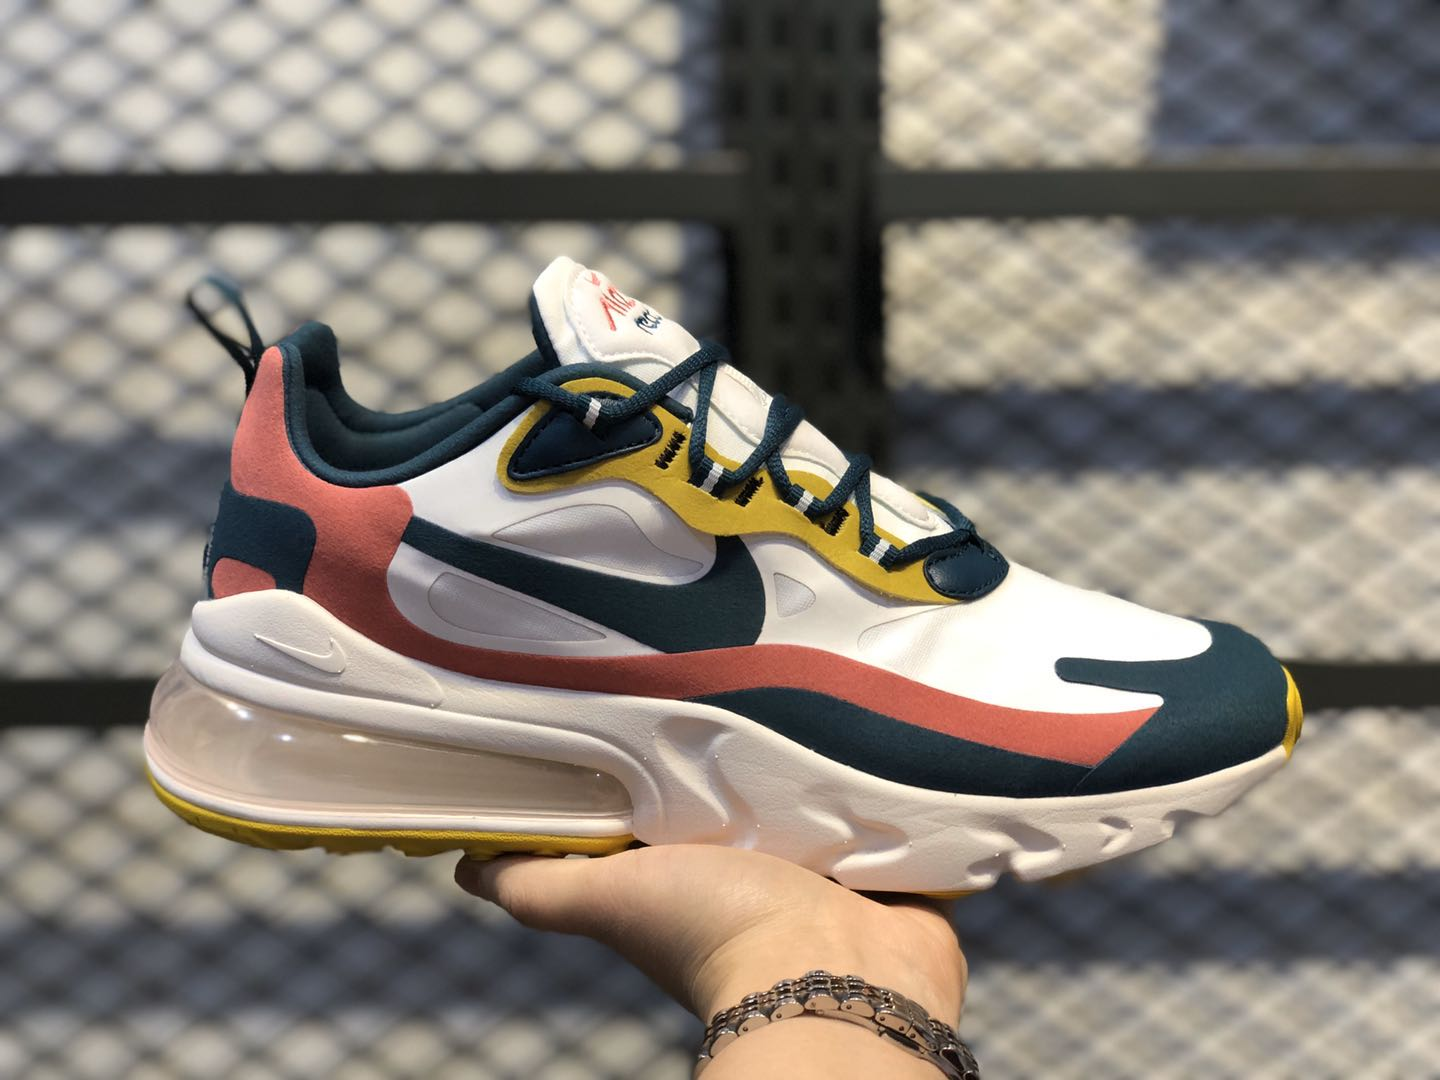 Nike Air Max 270 React Summit White/Midnight Turquoise/Yellow CT1264-103